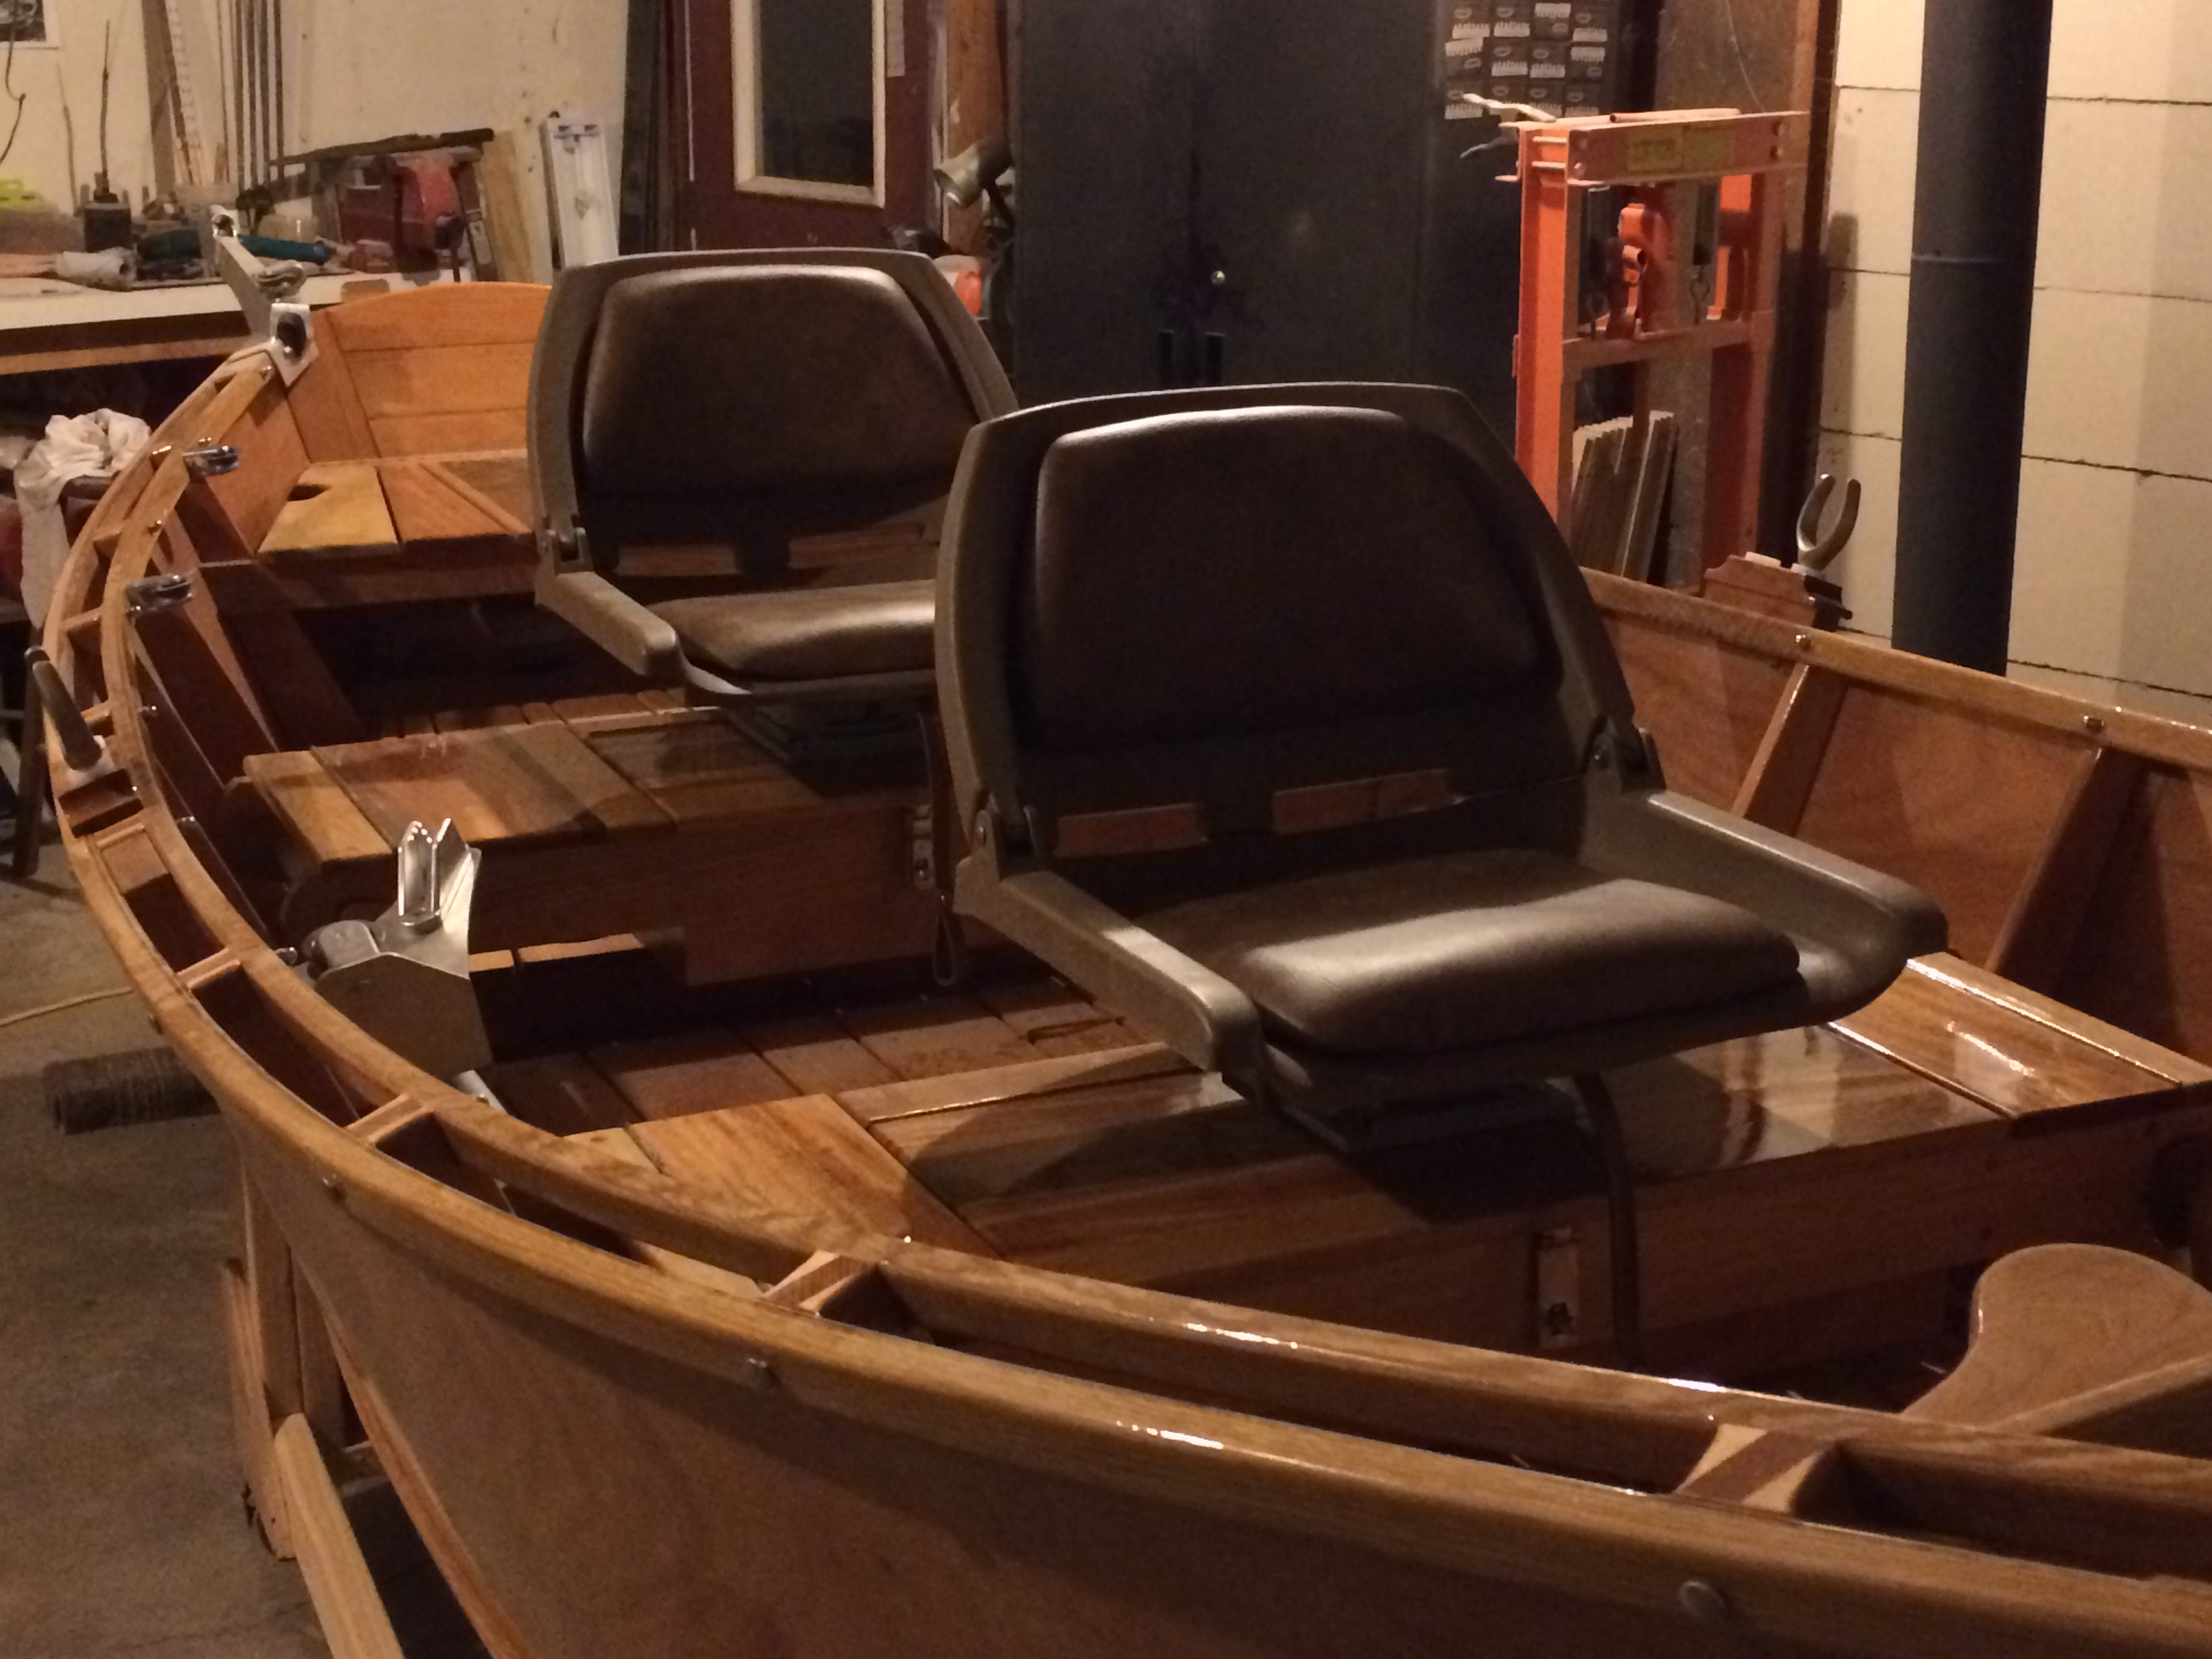 I Also Utilized The Seat Benches For Storage Space The Under Deck Space Is  A Good Spot To Stash Life Vests, Ropes Ect You`ll Want Some Drain Holes,